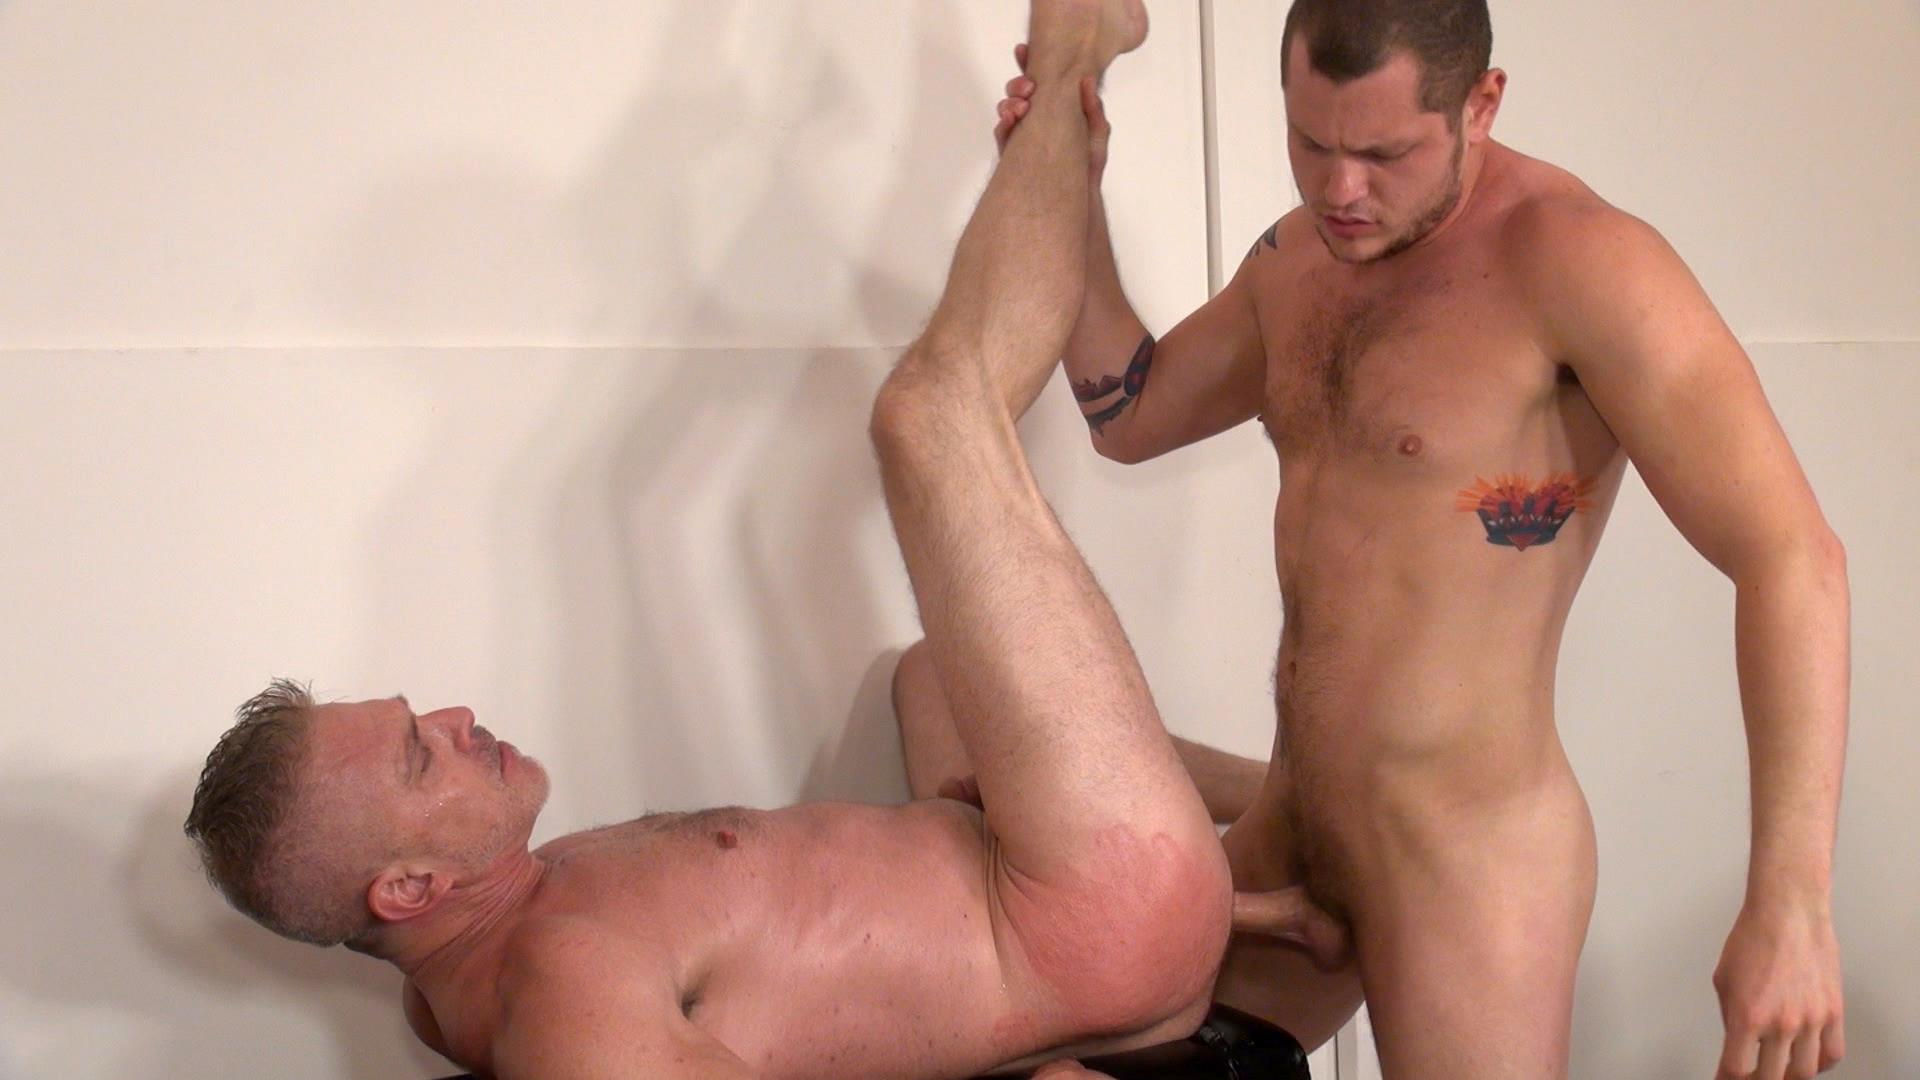 Raw and Rough Sam Dixon and Blue Bailey Daddy And Boy Flip Flip Bareback Fucking Amateur Gay Porn 03 Blue Bailey Flip Flop Barebacking With A Hung Daddy